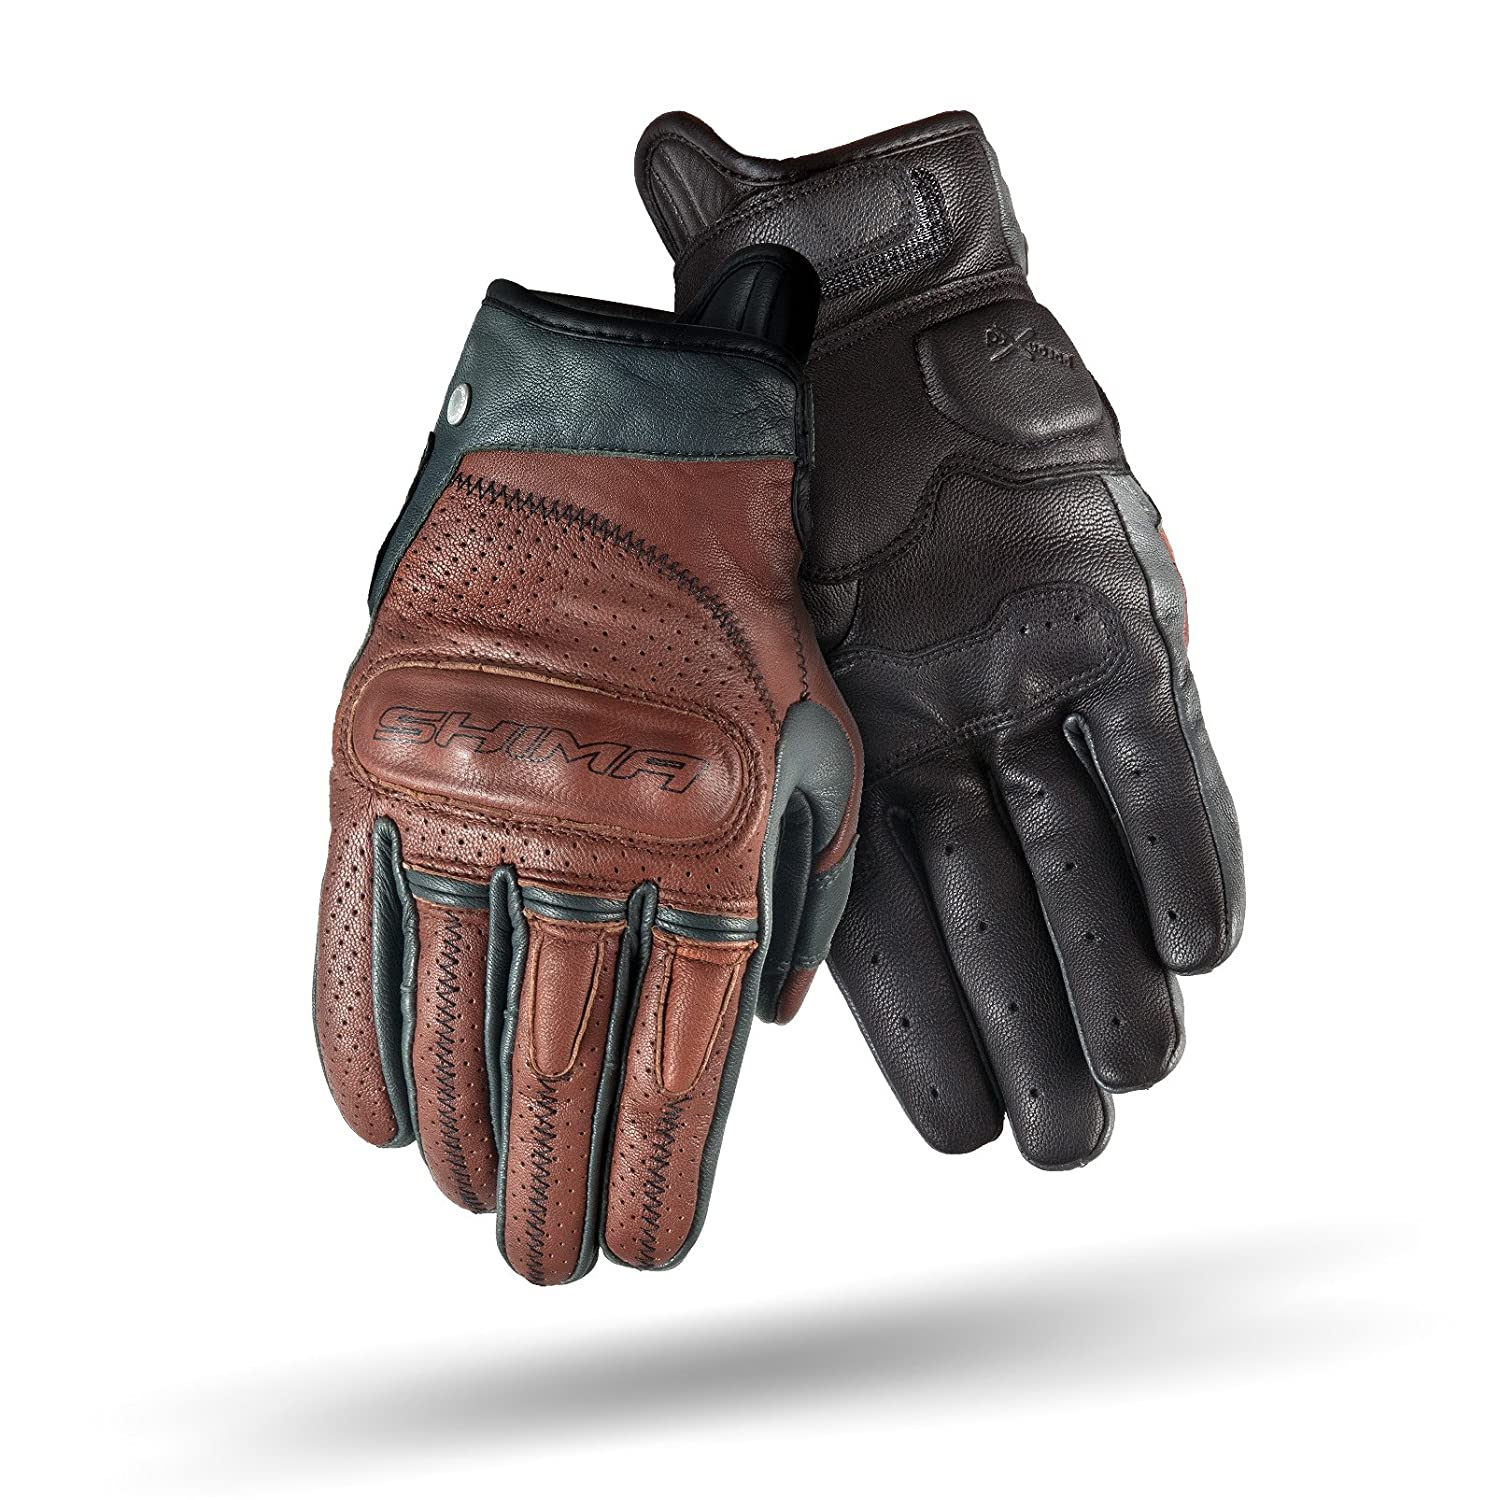 SHIMA Caliber Brown Brown Heritage Retro Vintage Classic Summer Motorcycle Gloves Size: L S-XXL